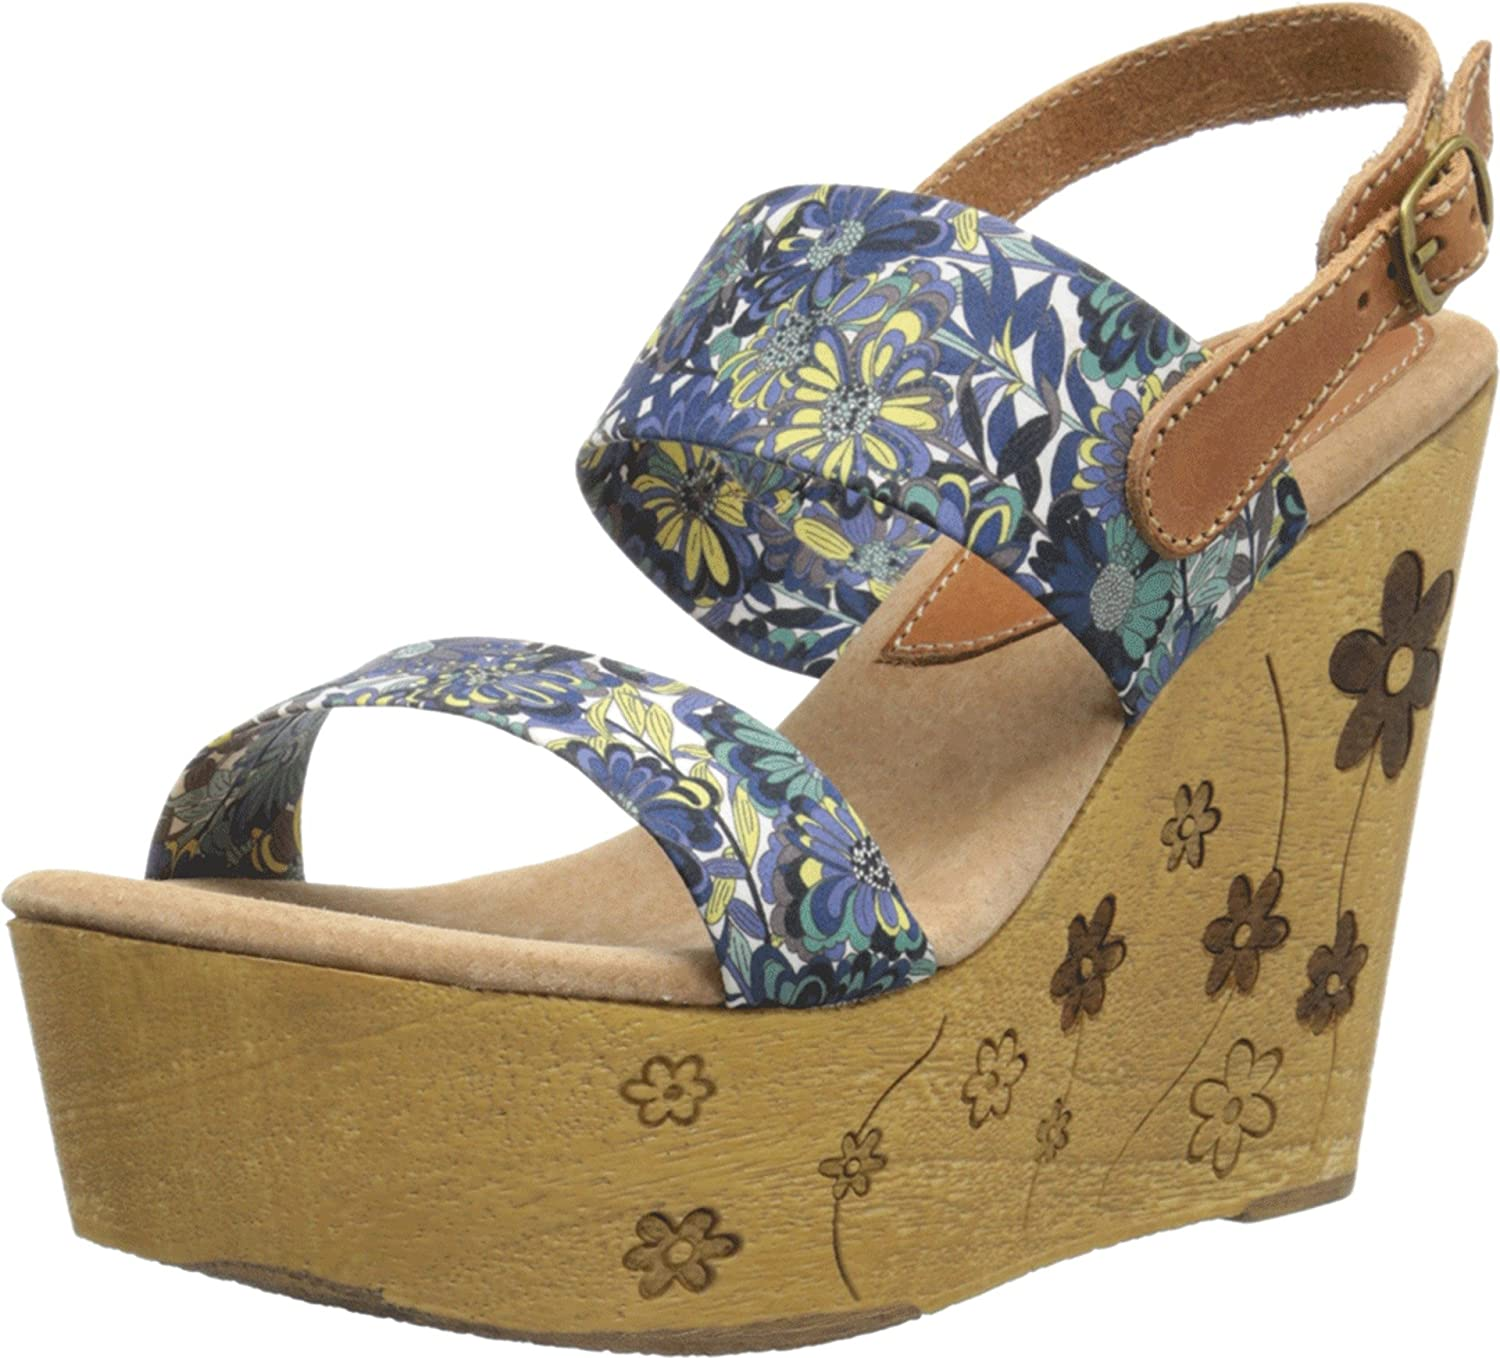 Sbicca Women's Fabiana Wedge Sandal B01AWAX3TM 8 B(M) US|Navy Multi